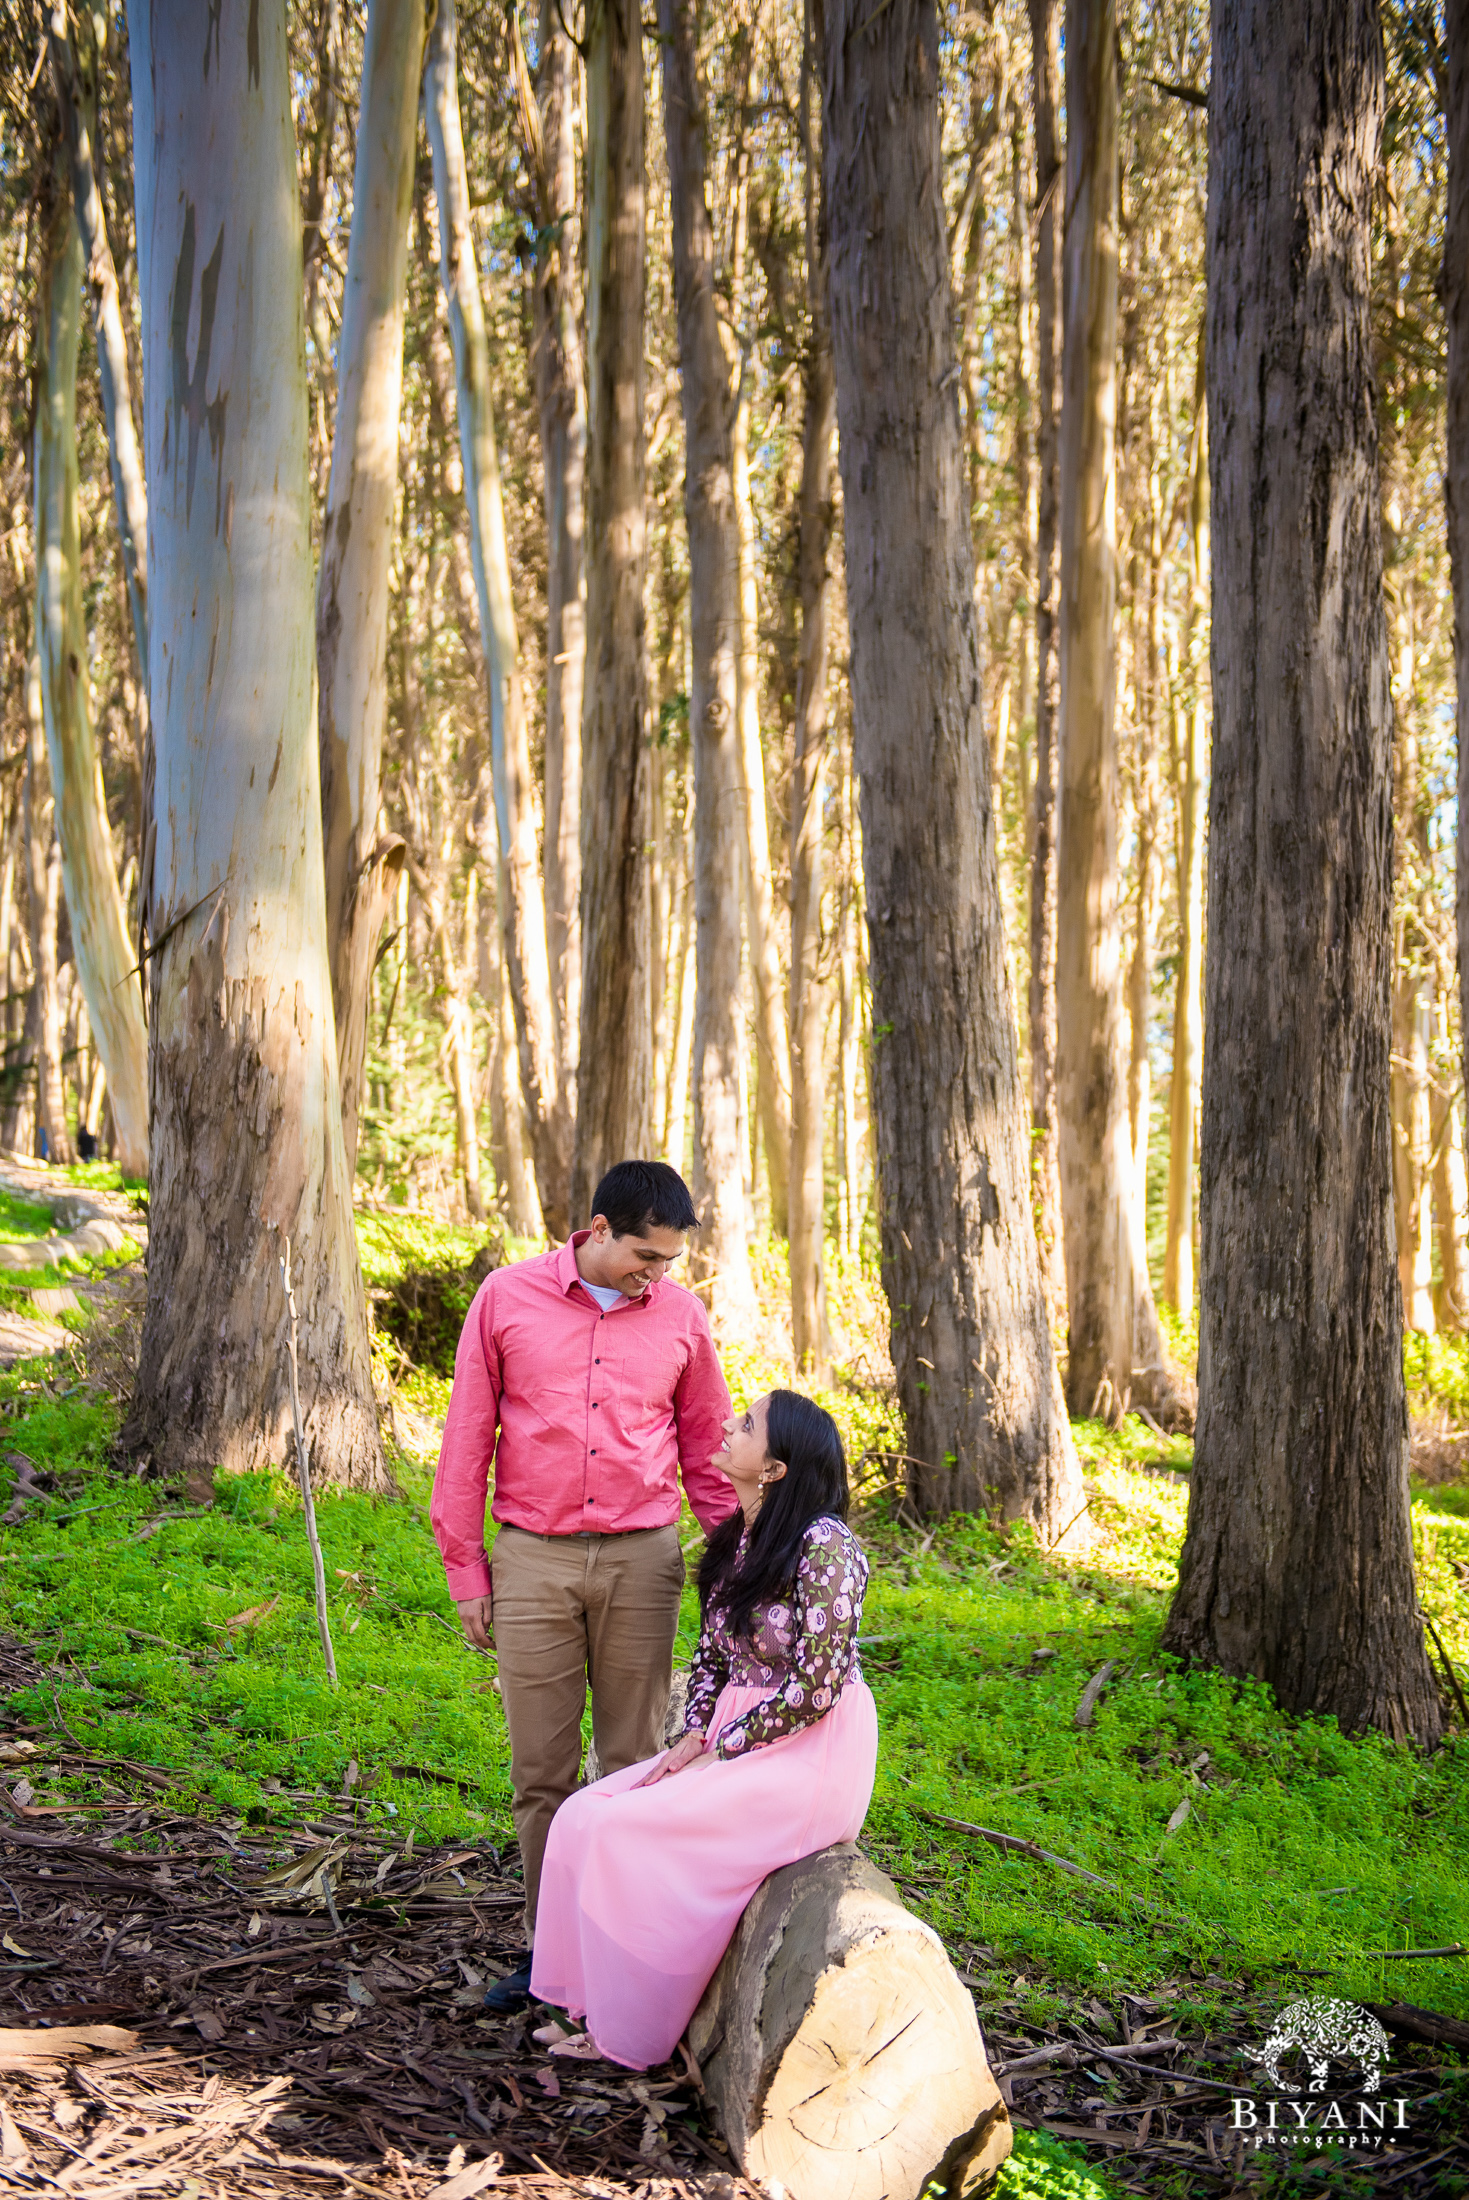 couple in a forest in San Francisco during engagement photo shoot on a sunny day